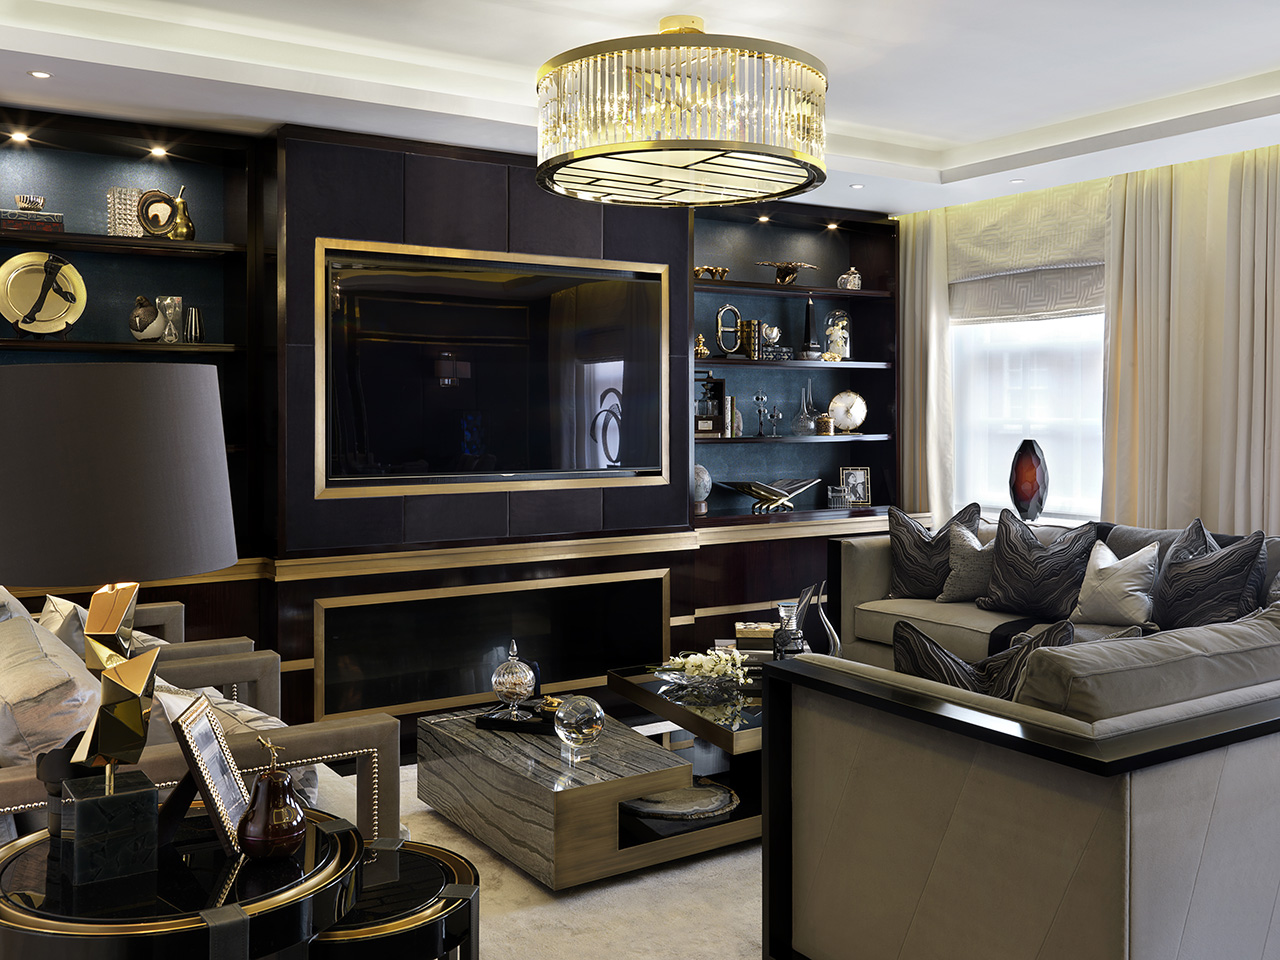 luxury living room decoration luxury living room decoration 10 Luxury Living Room Decoration by Katharine Pooley 03 Grosvenor Square1 project by Katherine pooley